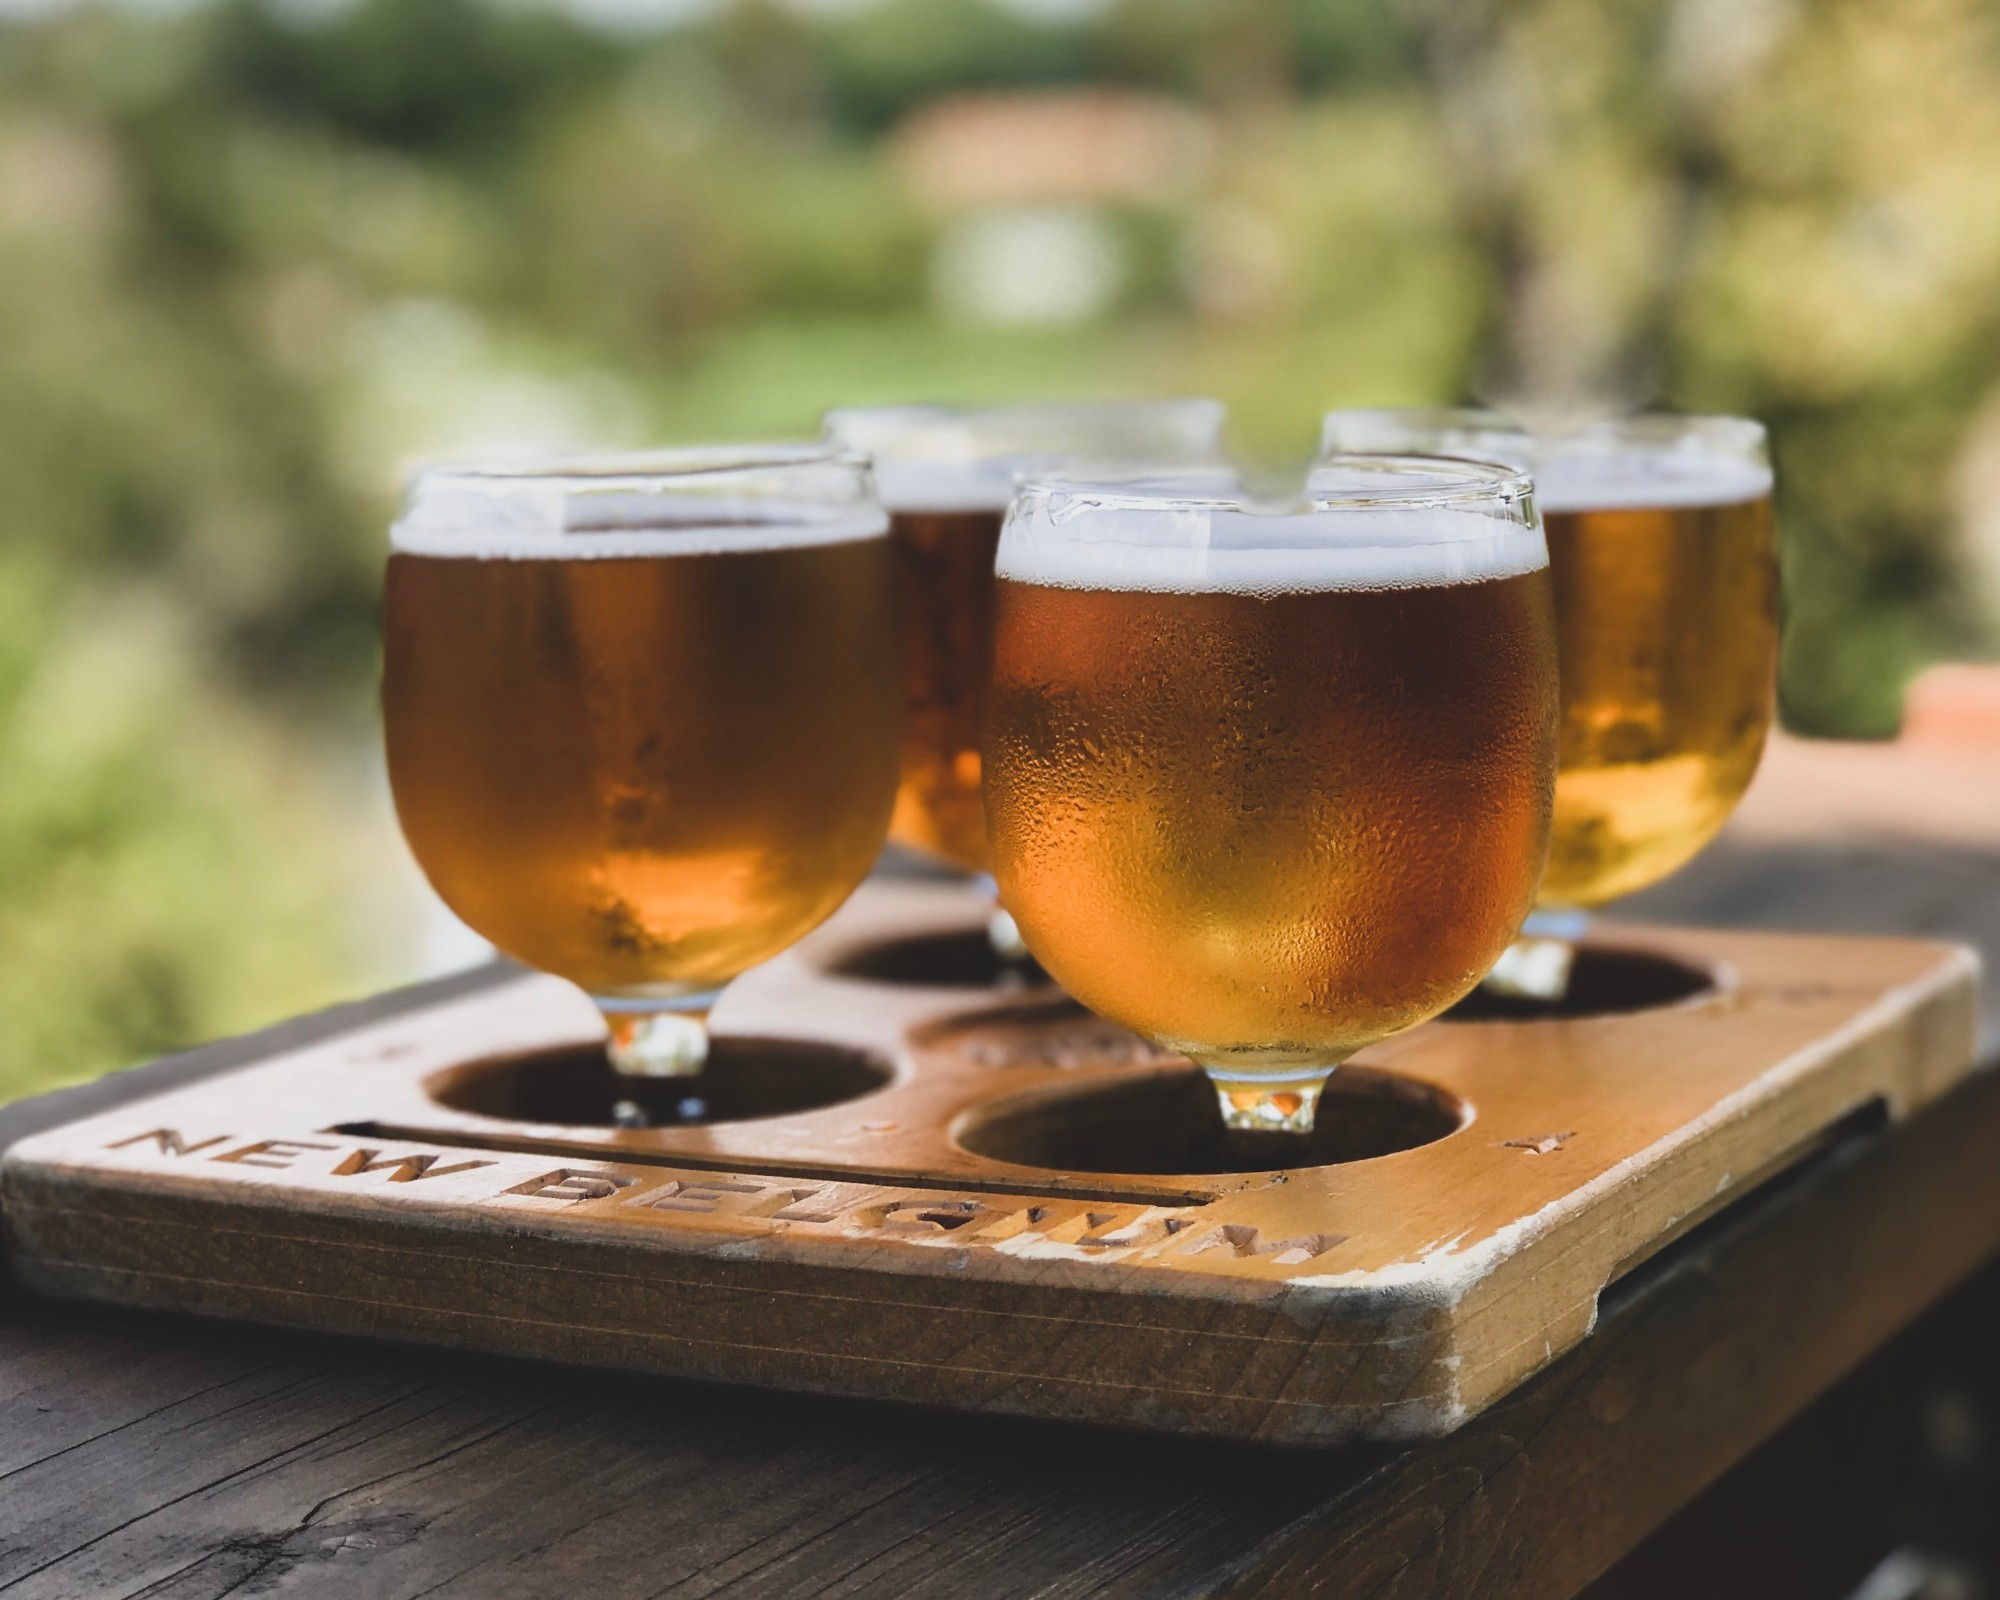 Asheville Breweries Open On Christmas Day 2021 A Perfect Weekend In Asheville Nc If You Love Craft Beer Being Active Work For Your Beer A Perfect Weekend In Asheville Nc If You Love Craft Beer Being